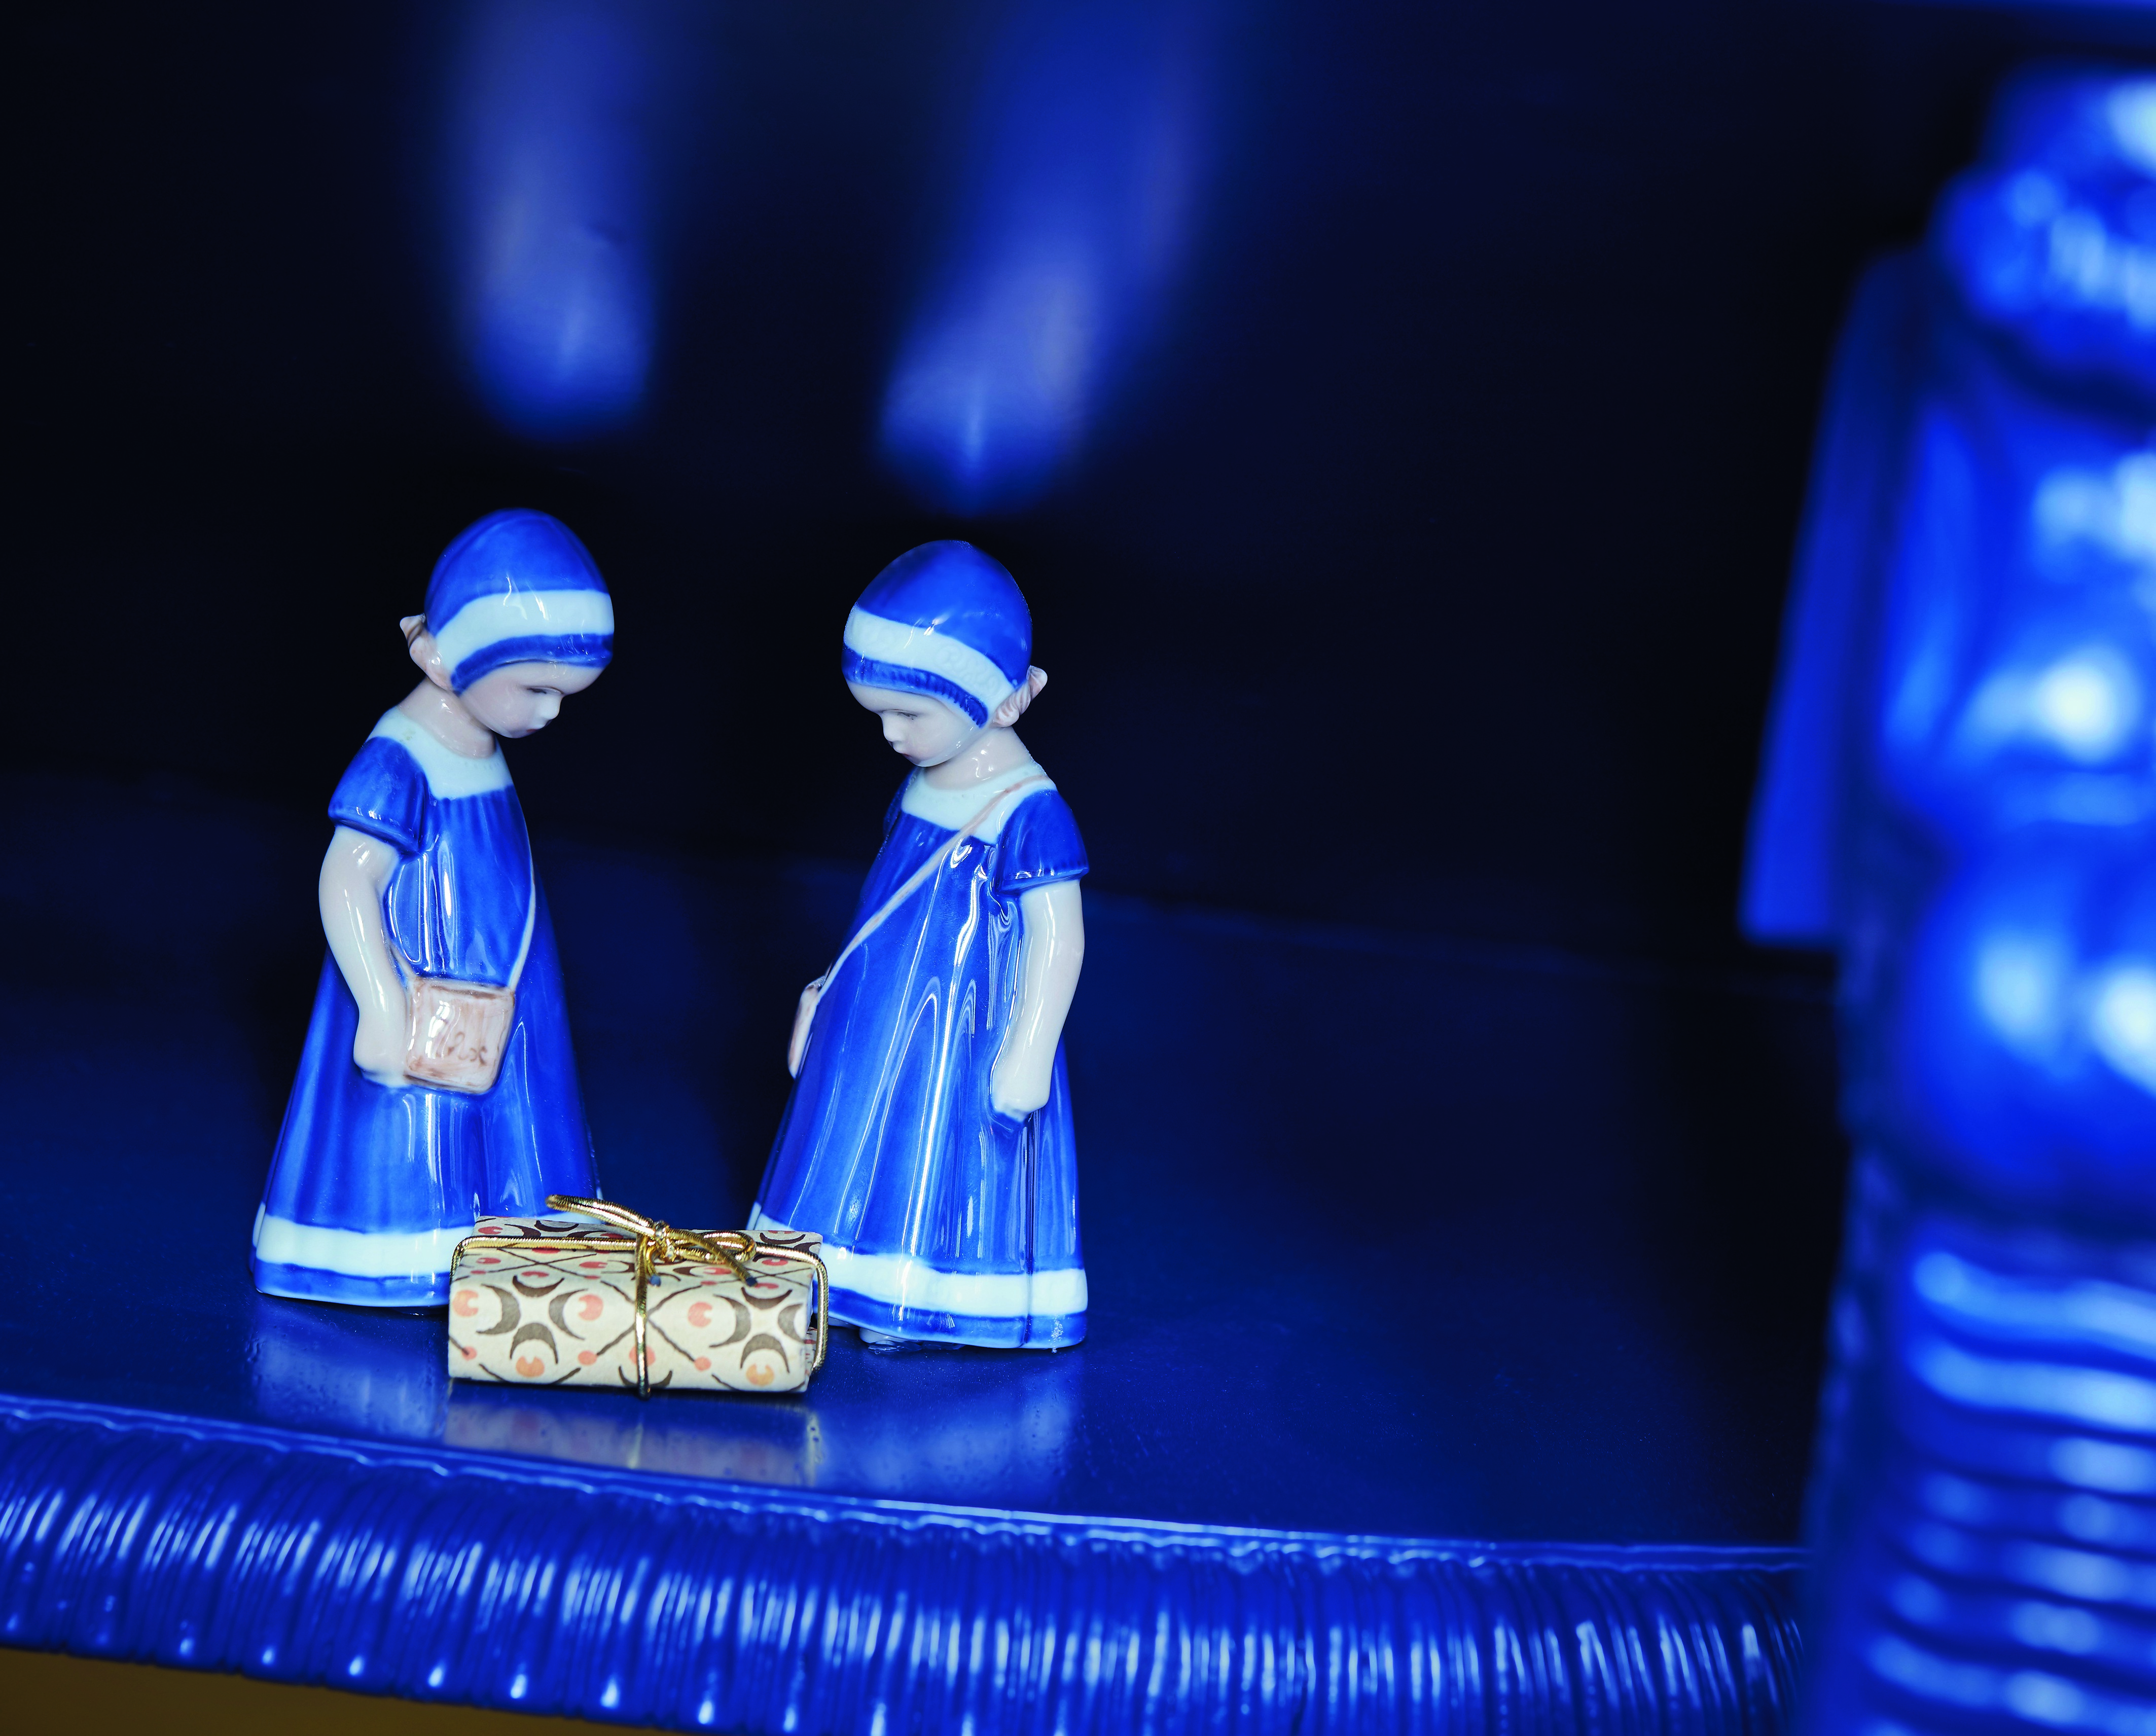 fashionable Christmas - a deconstructed cobalt blue Christmas table by Baum & Pferdgarten has two tiny figurines in cobalt blue and whit dresses contemplating a Christmas gift - Royal Copenhagen via Atticmag